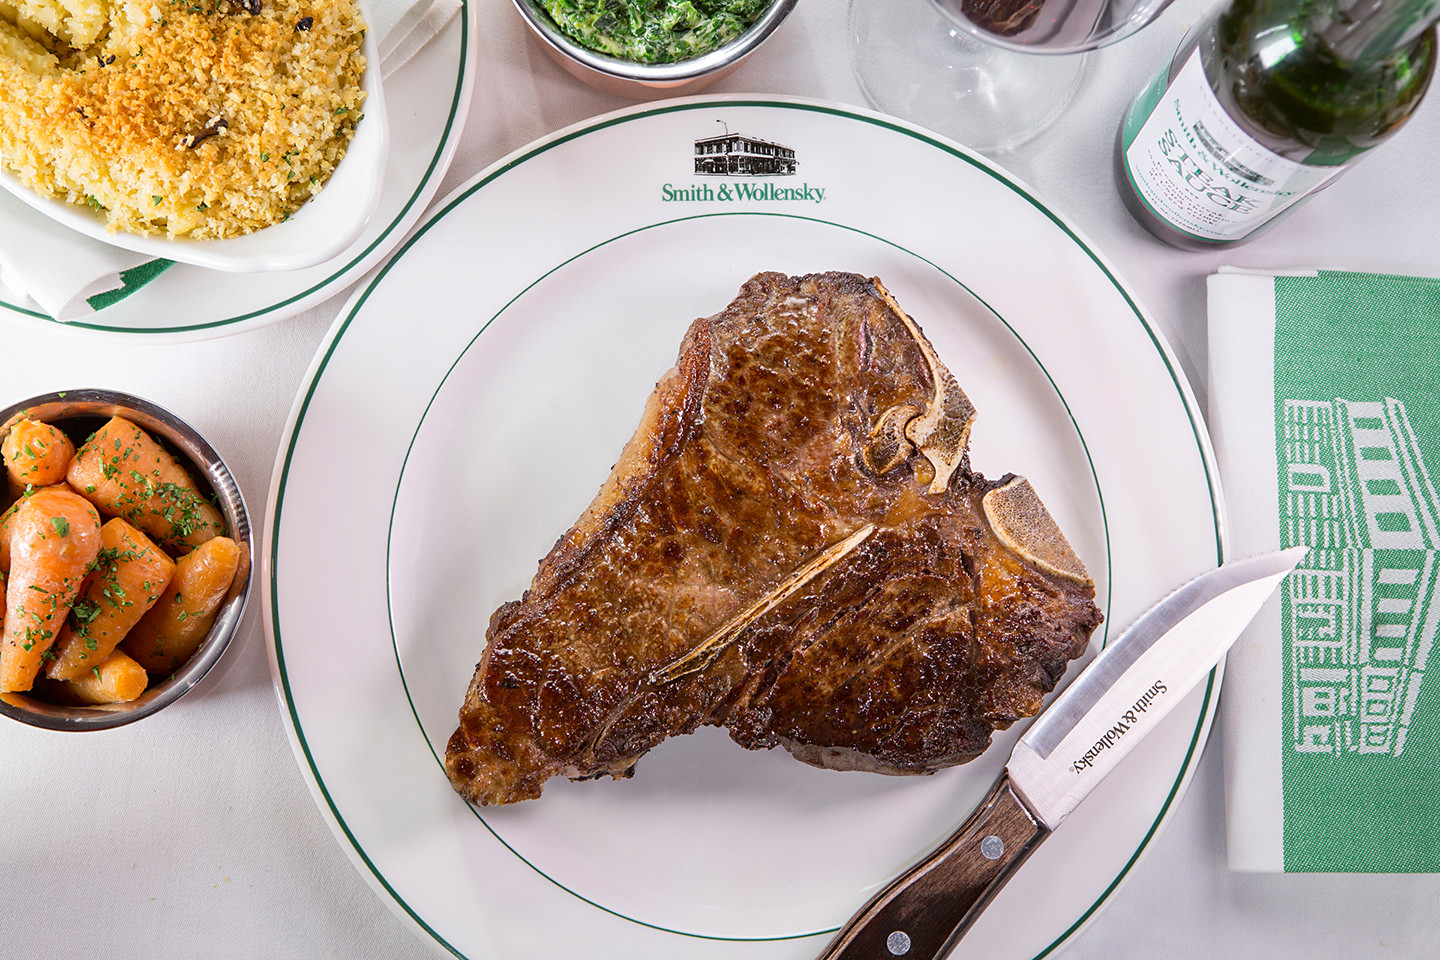 Smith & Wollensky - Perfect Steak